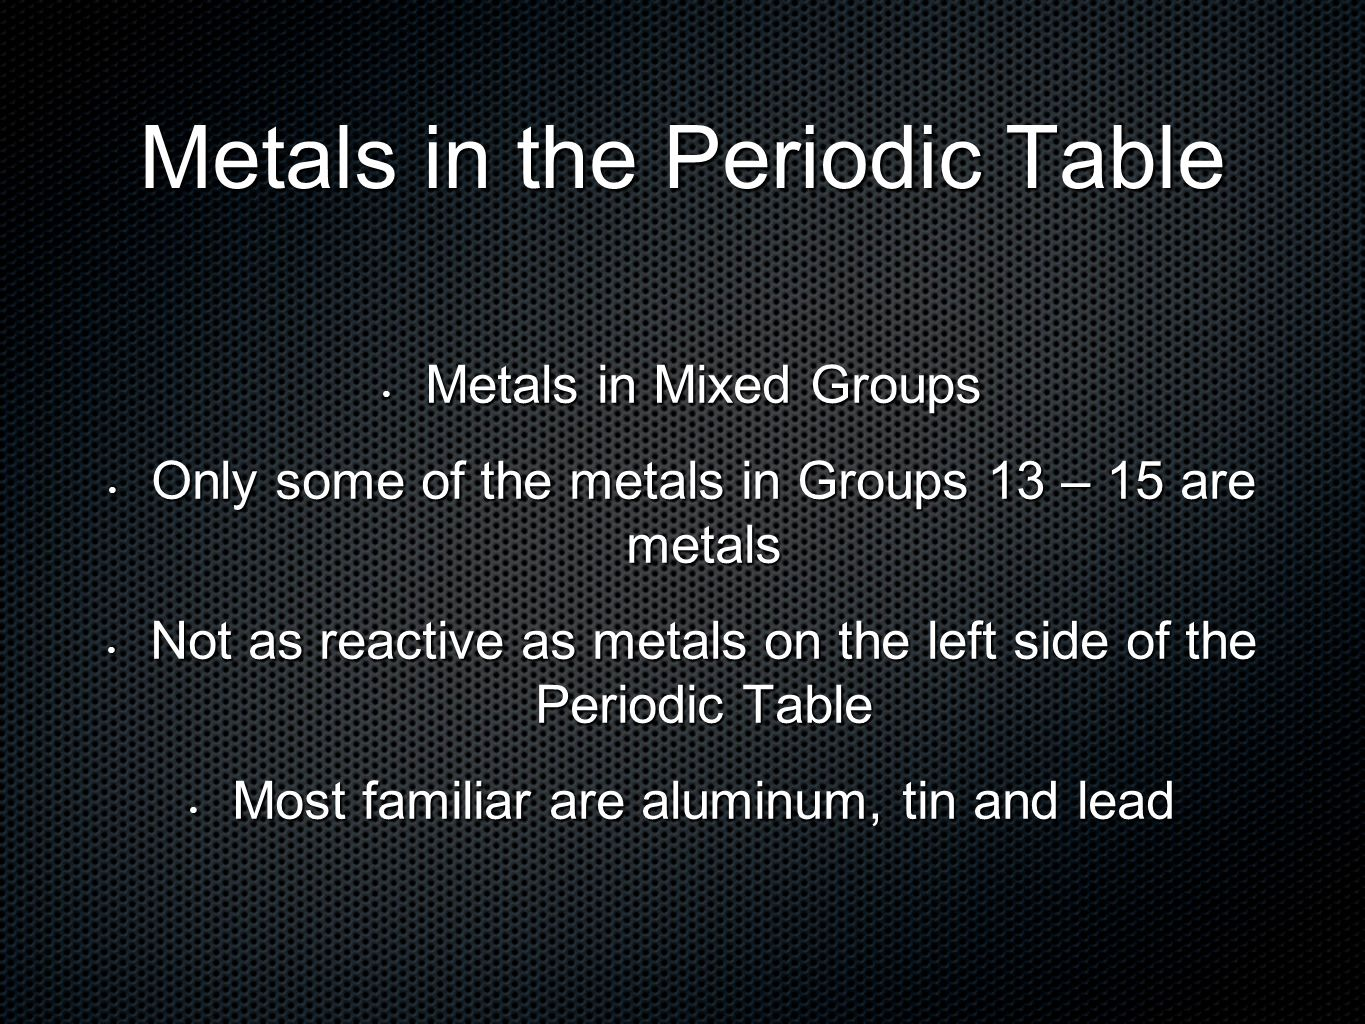 Elements and the periodic table introduction to atoms ppt download 37 metals in the periodic table metals in mixed groups metals gamestrikefo Choice Image